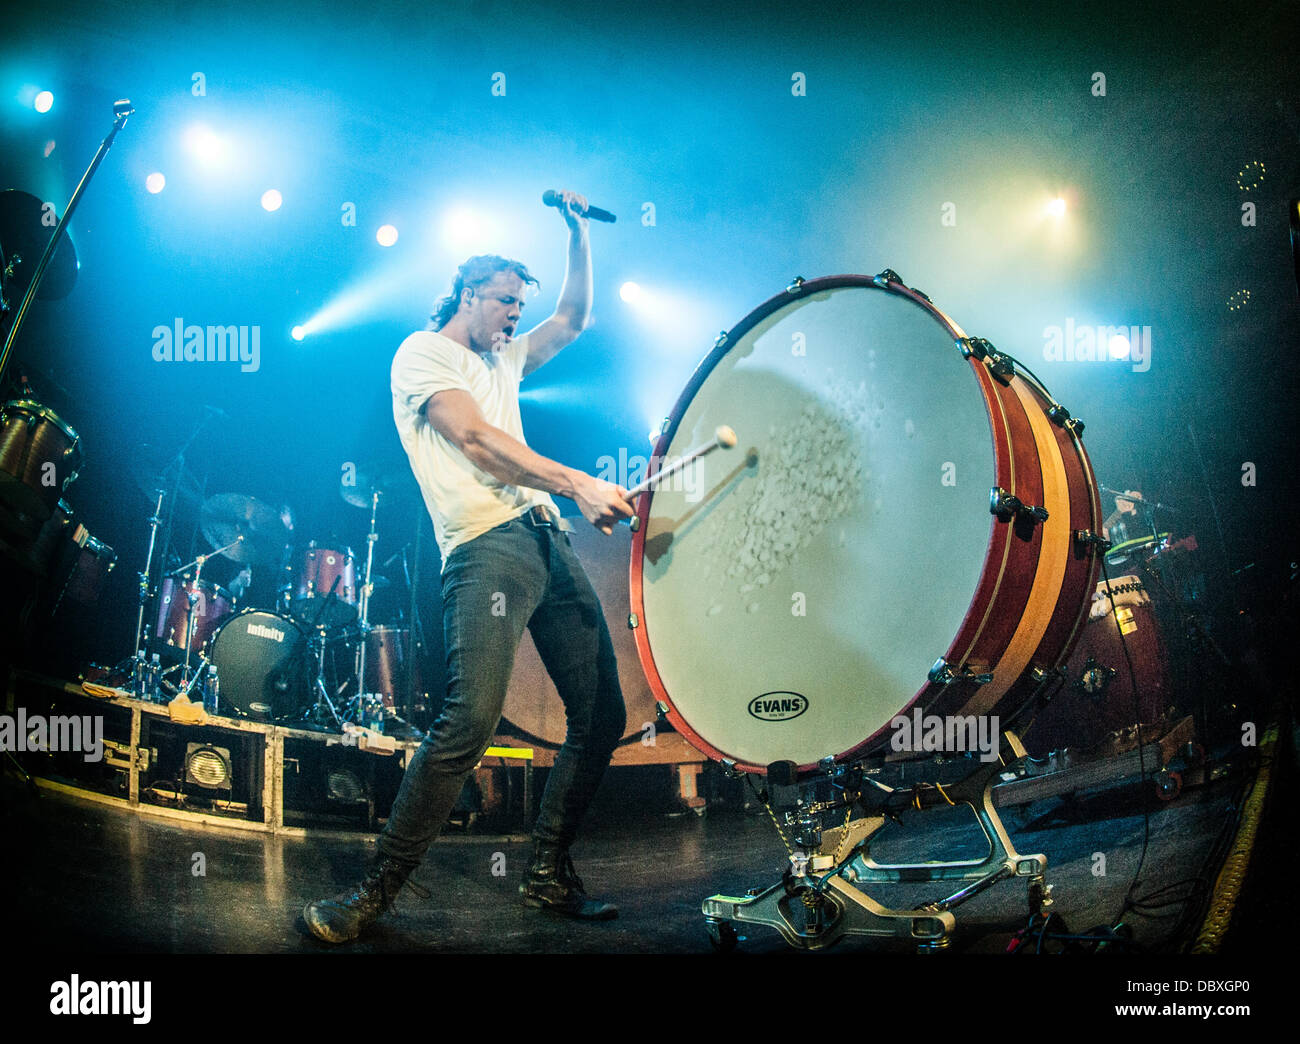 Dan Reynolds of Imagine Dragons performing live at Metro in Chicago, IL July 31, 2013 - Stock Image